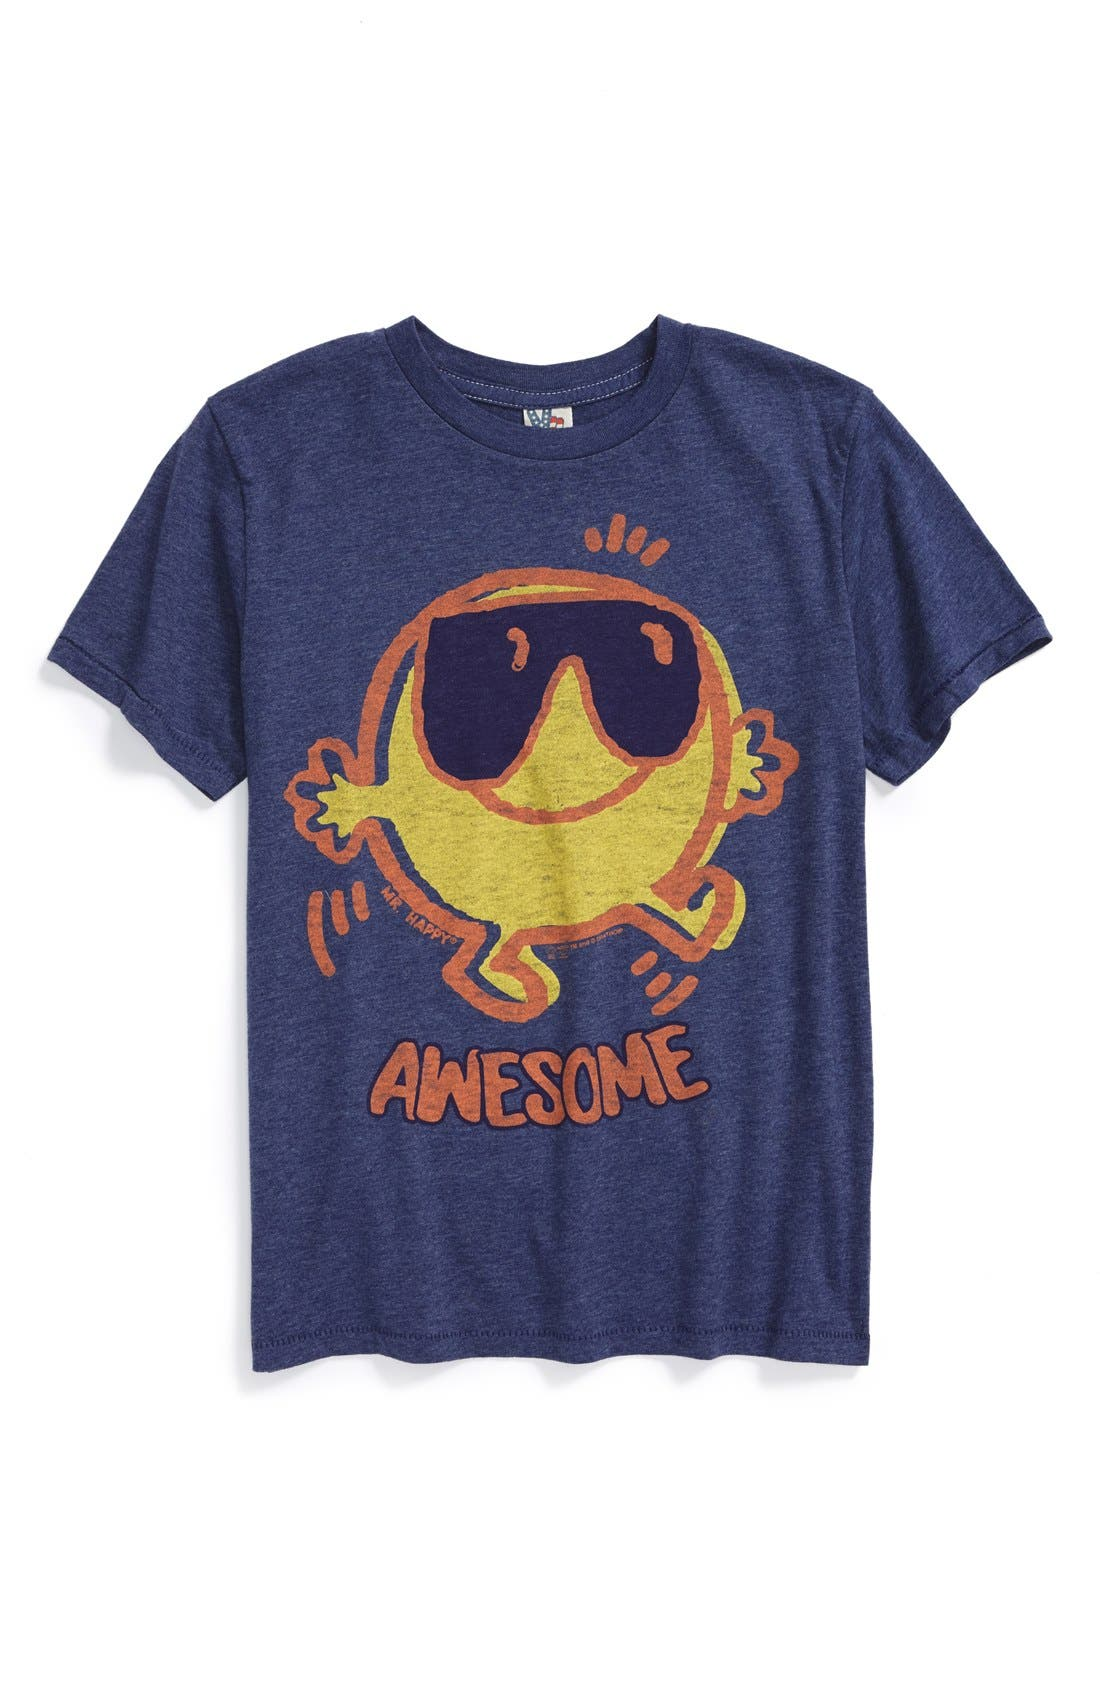 Alternate Image 1 Selected - Junk Food 'Awesome' T-Shirt (Little Boys)